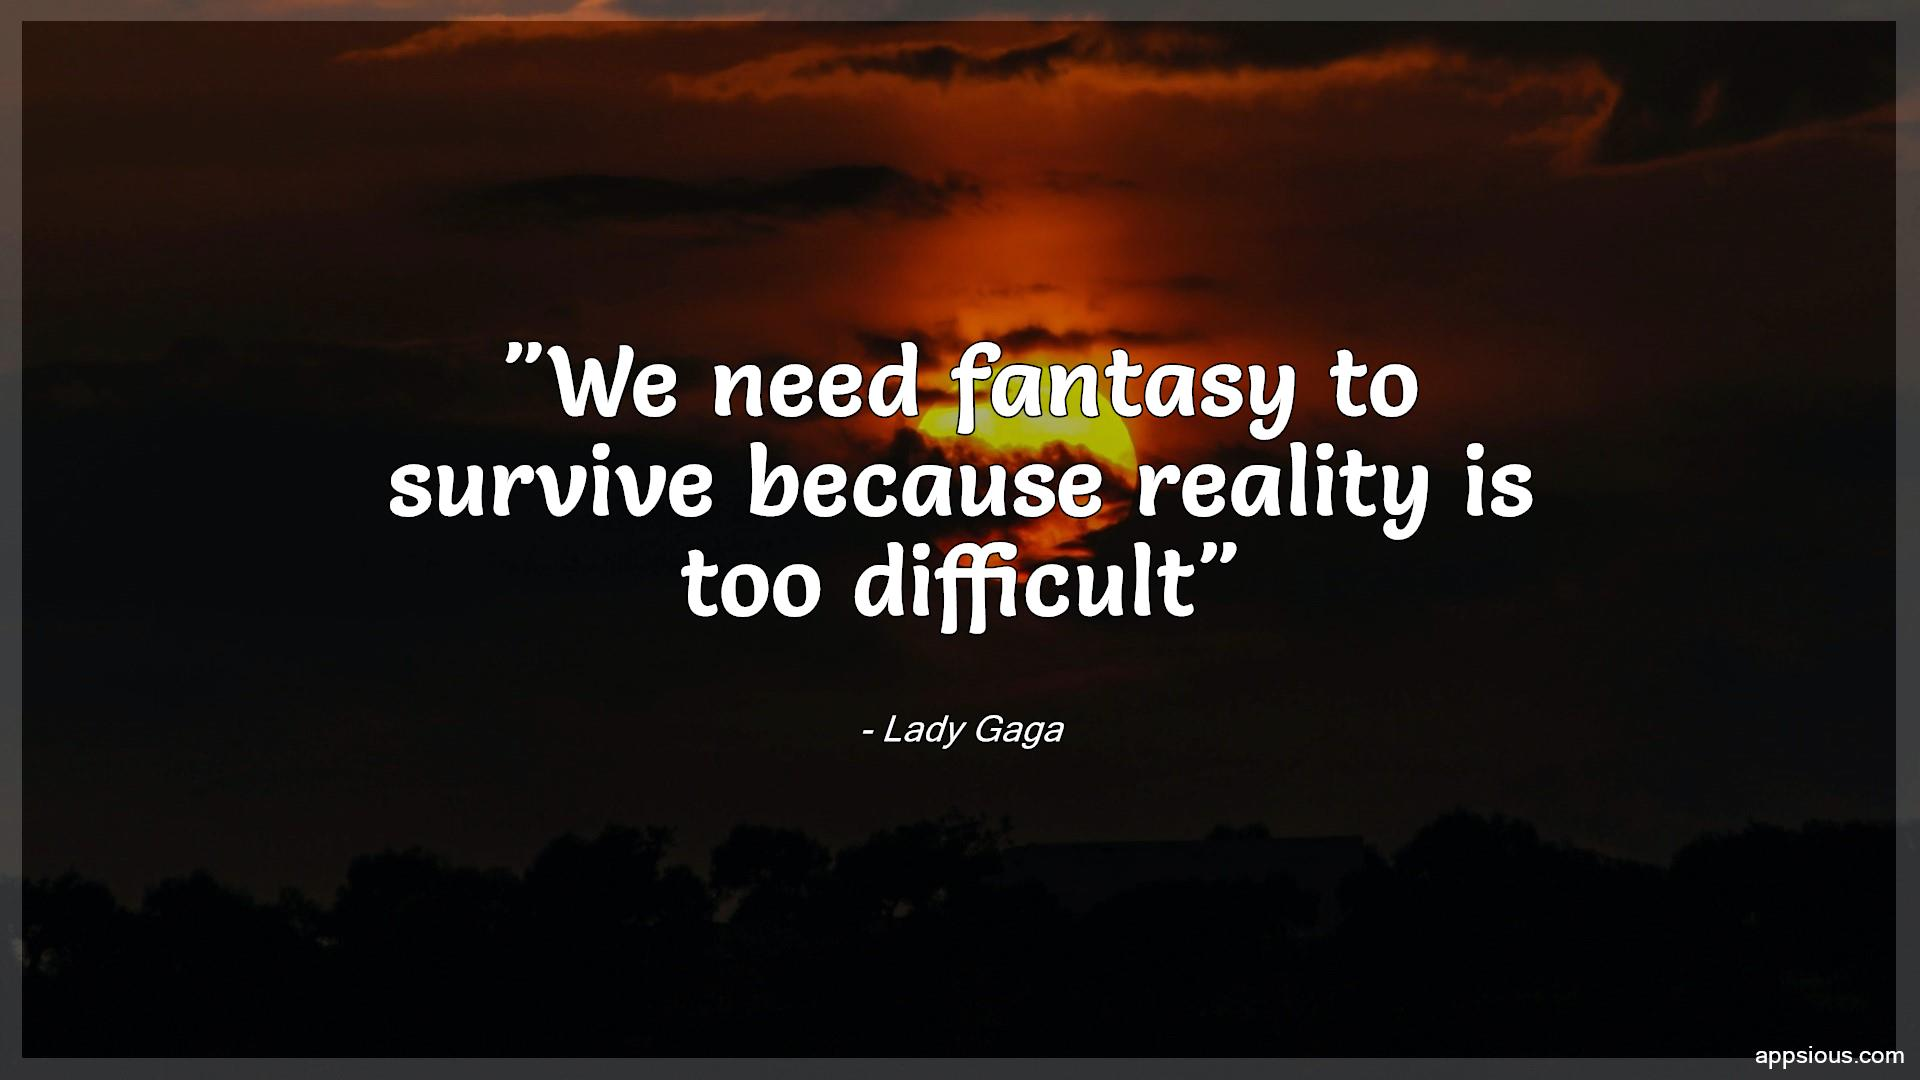 We need fantasy to survive because reality is too difficult